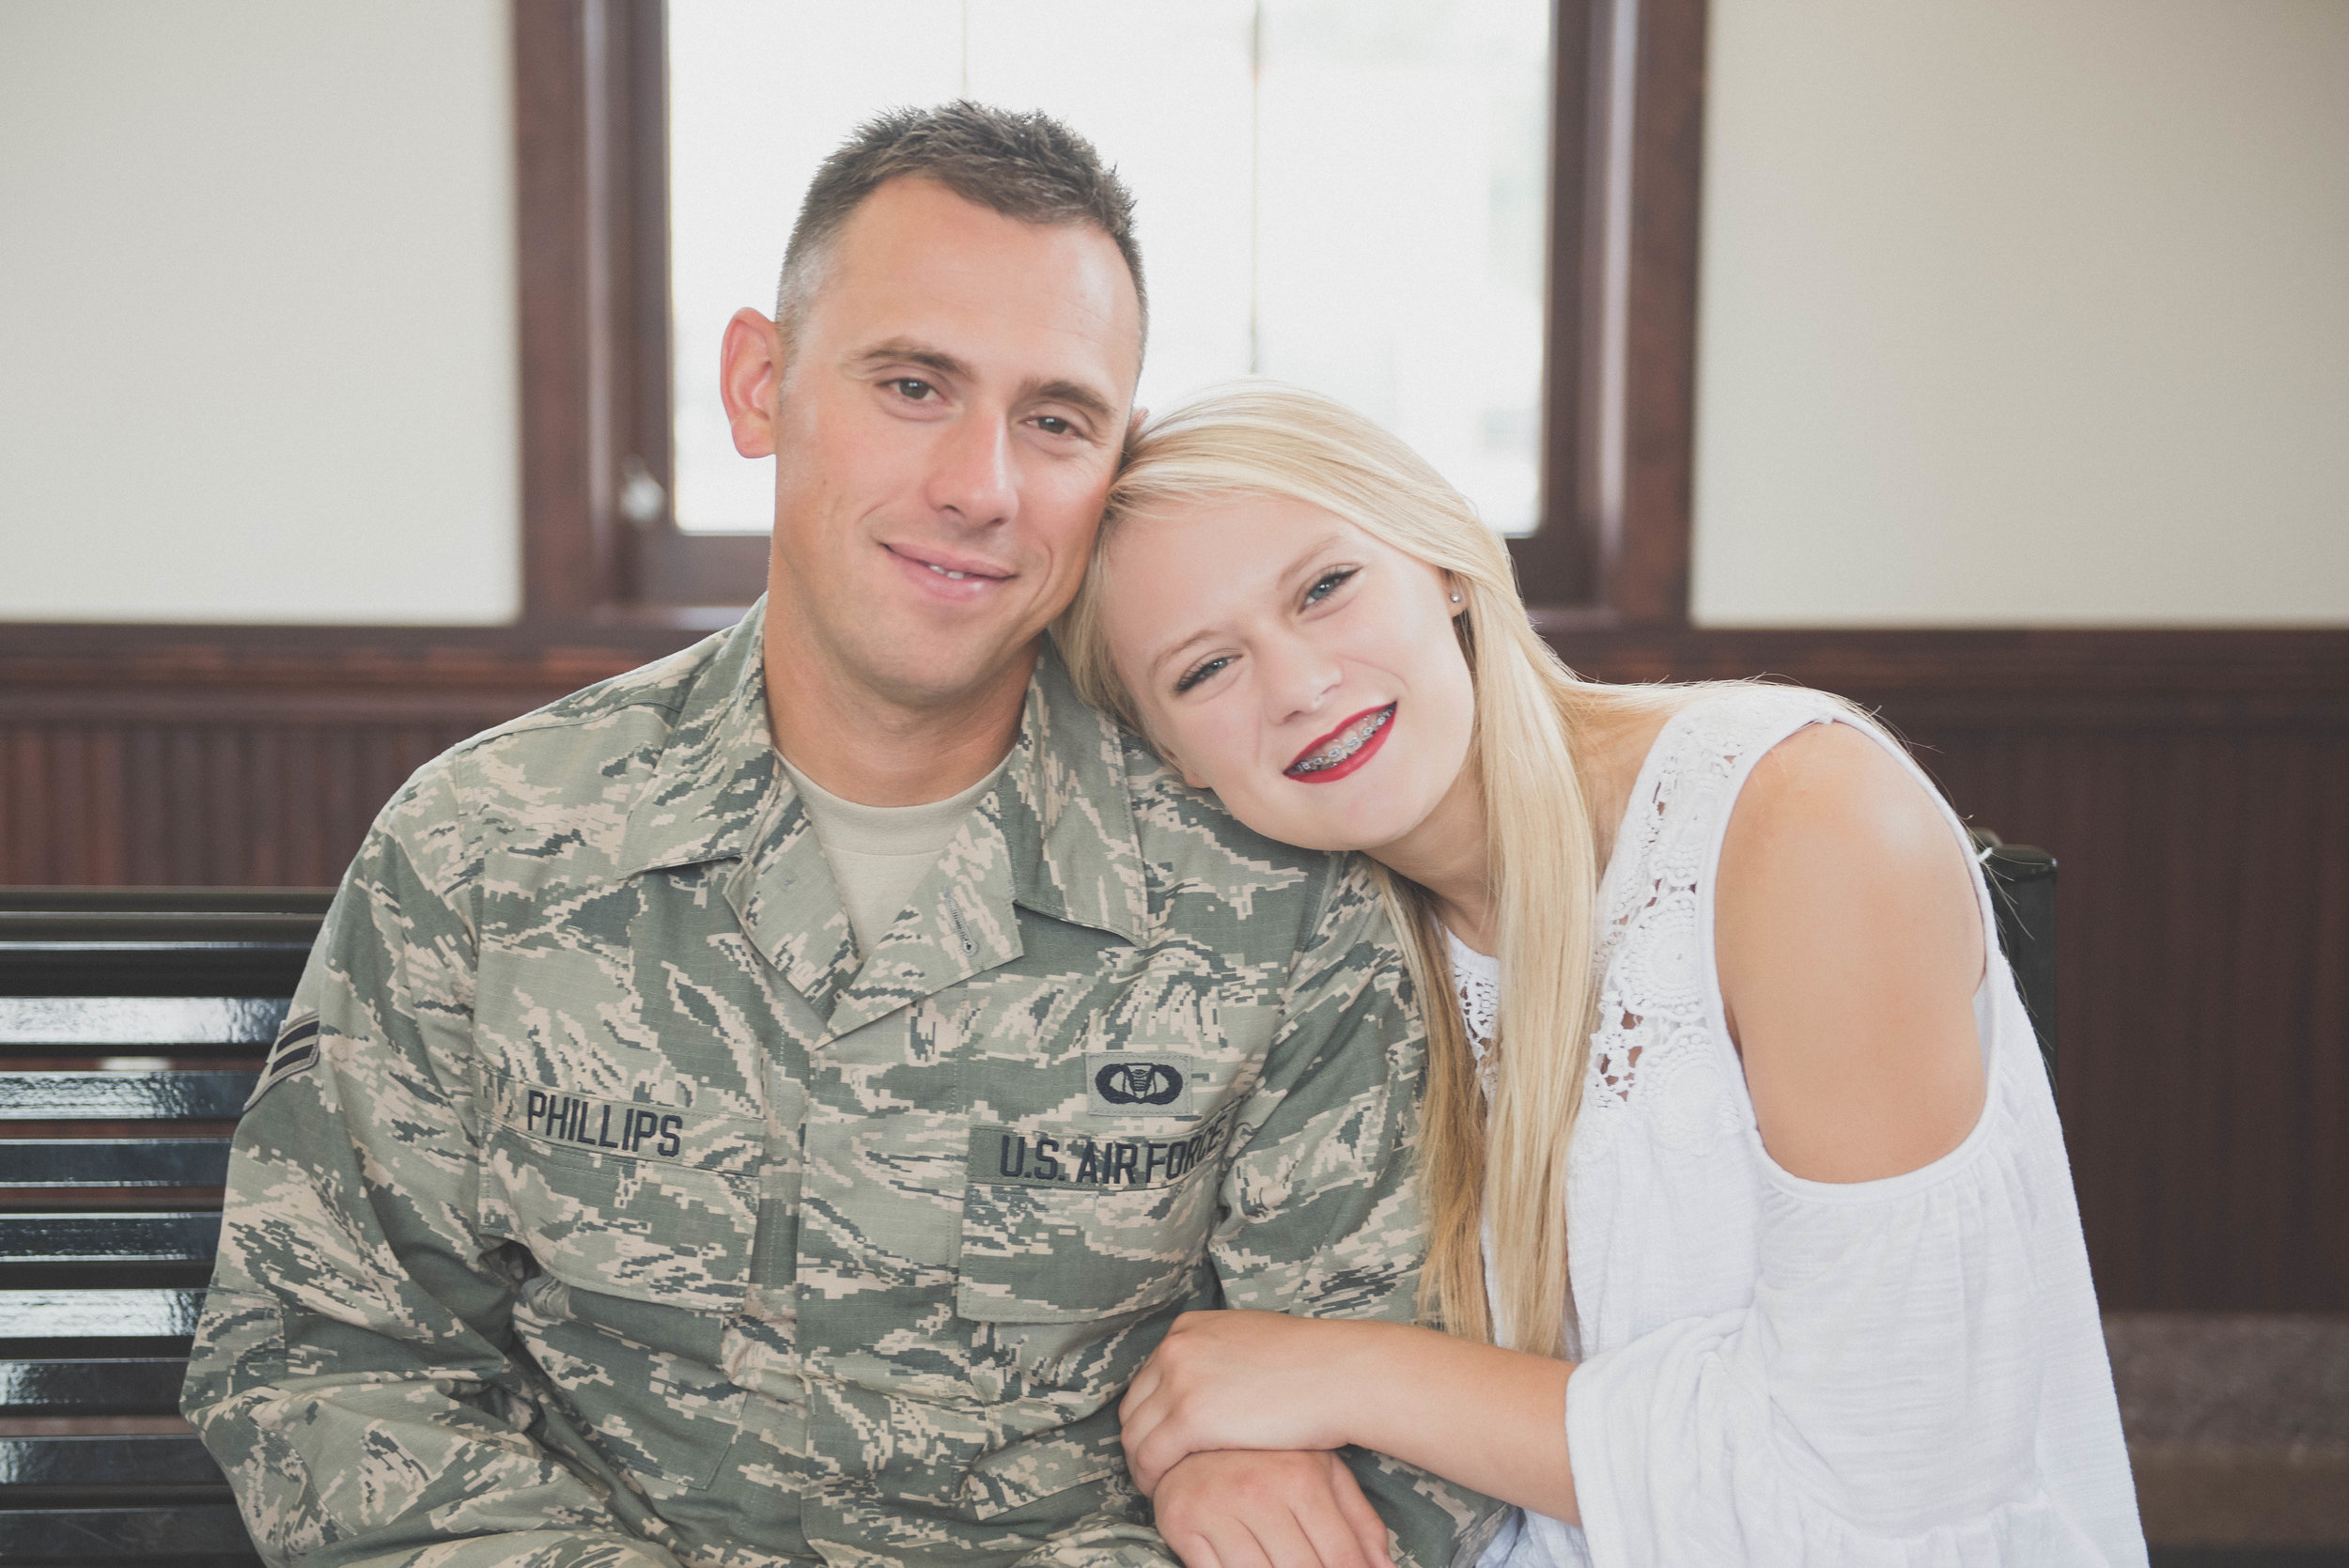 dad and daughter military image